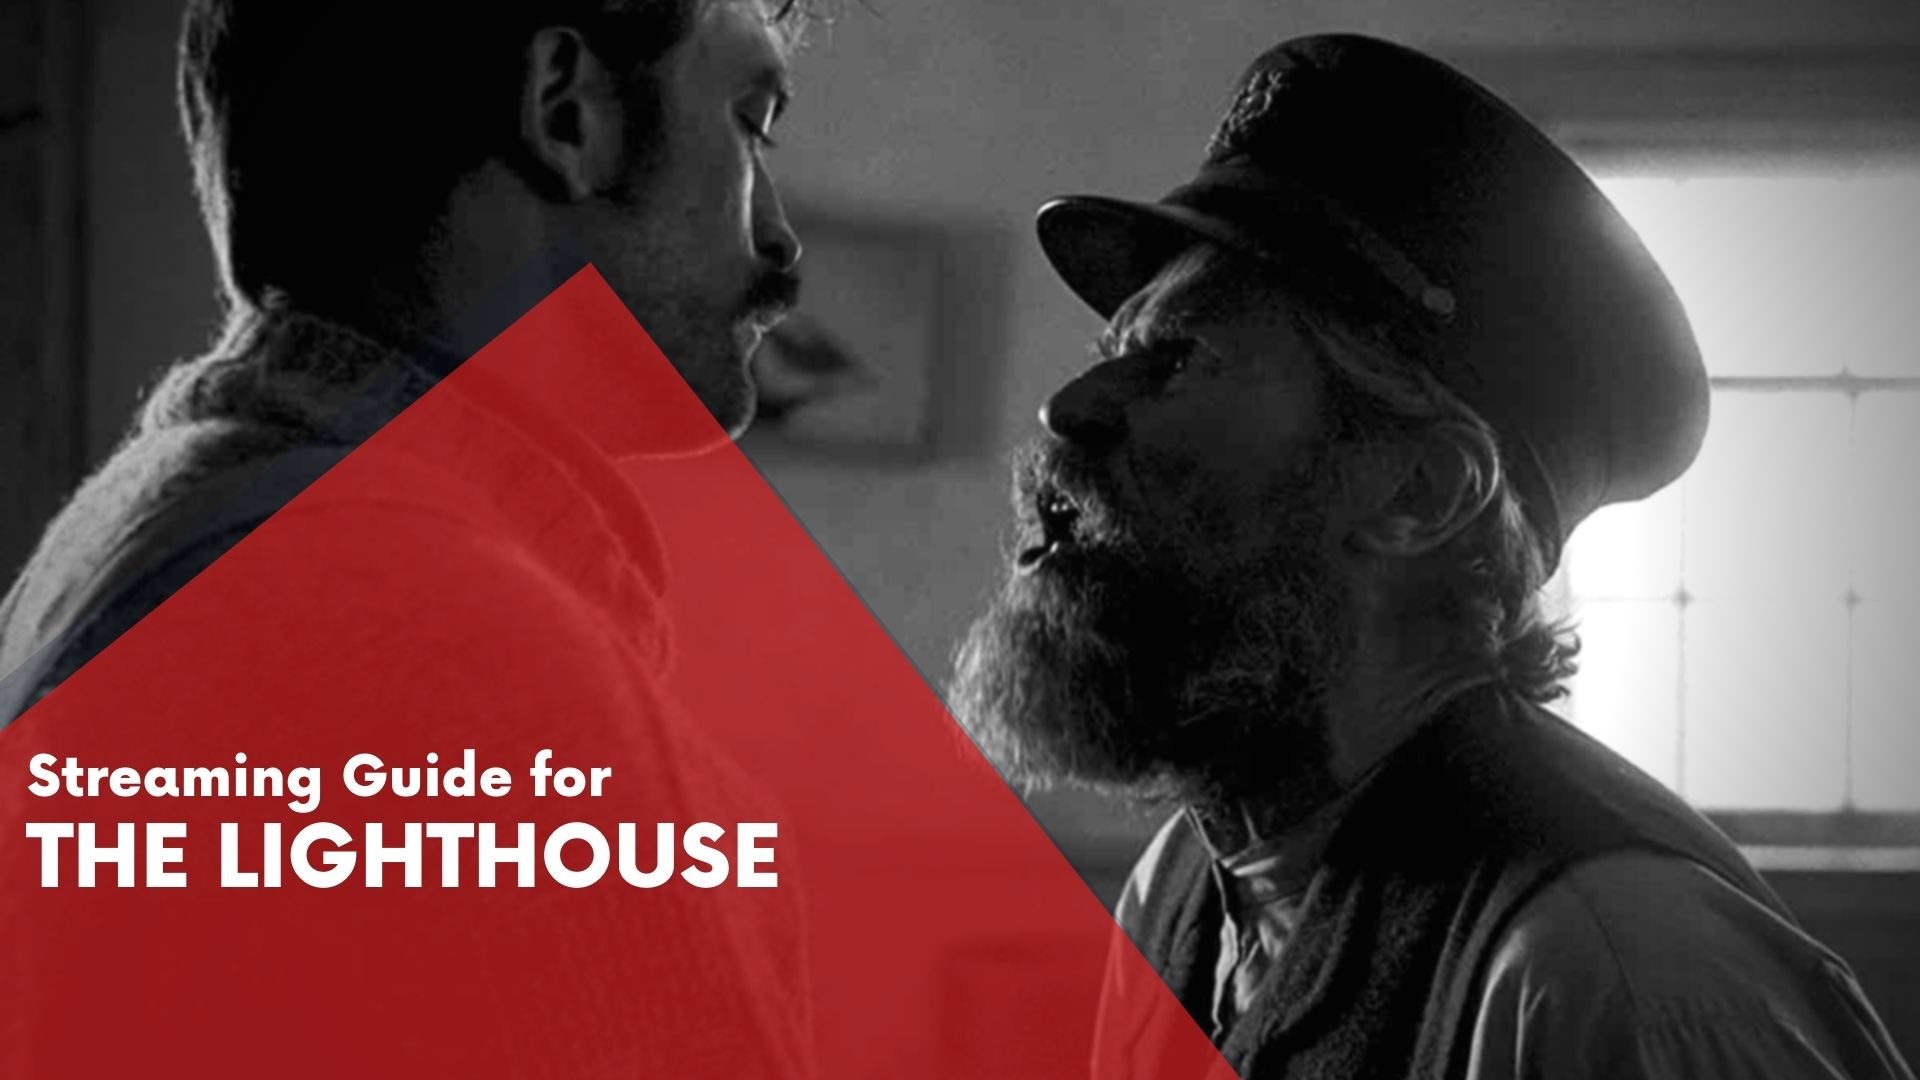 The Lighthouse Streaming Guide